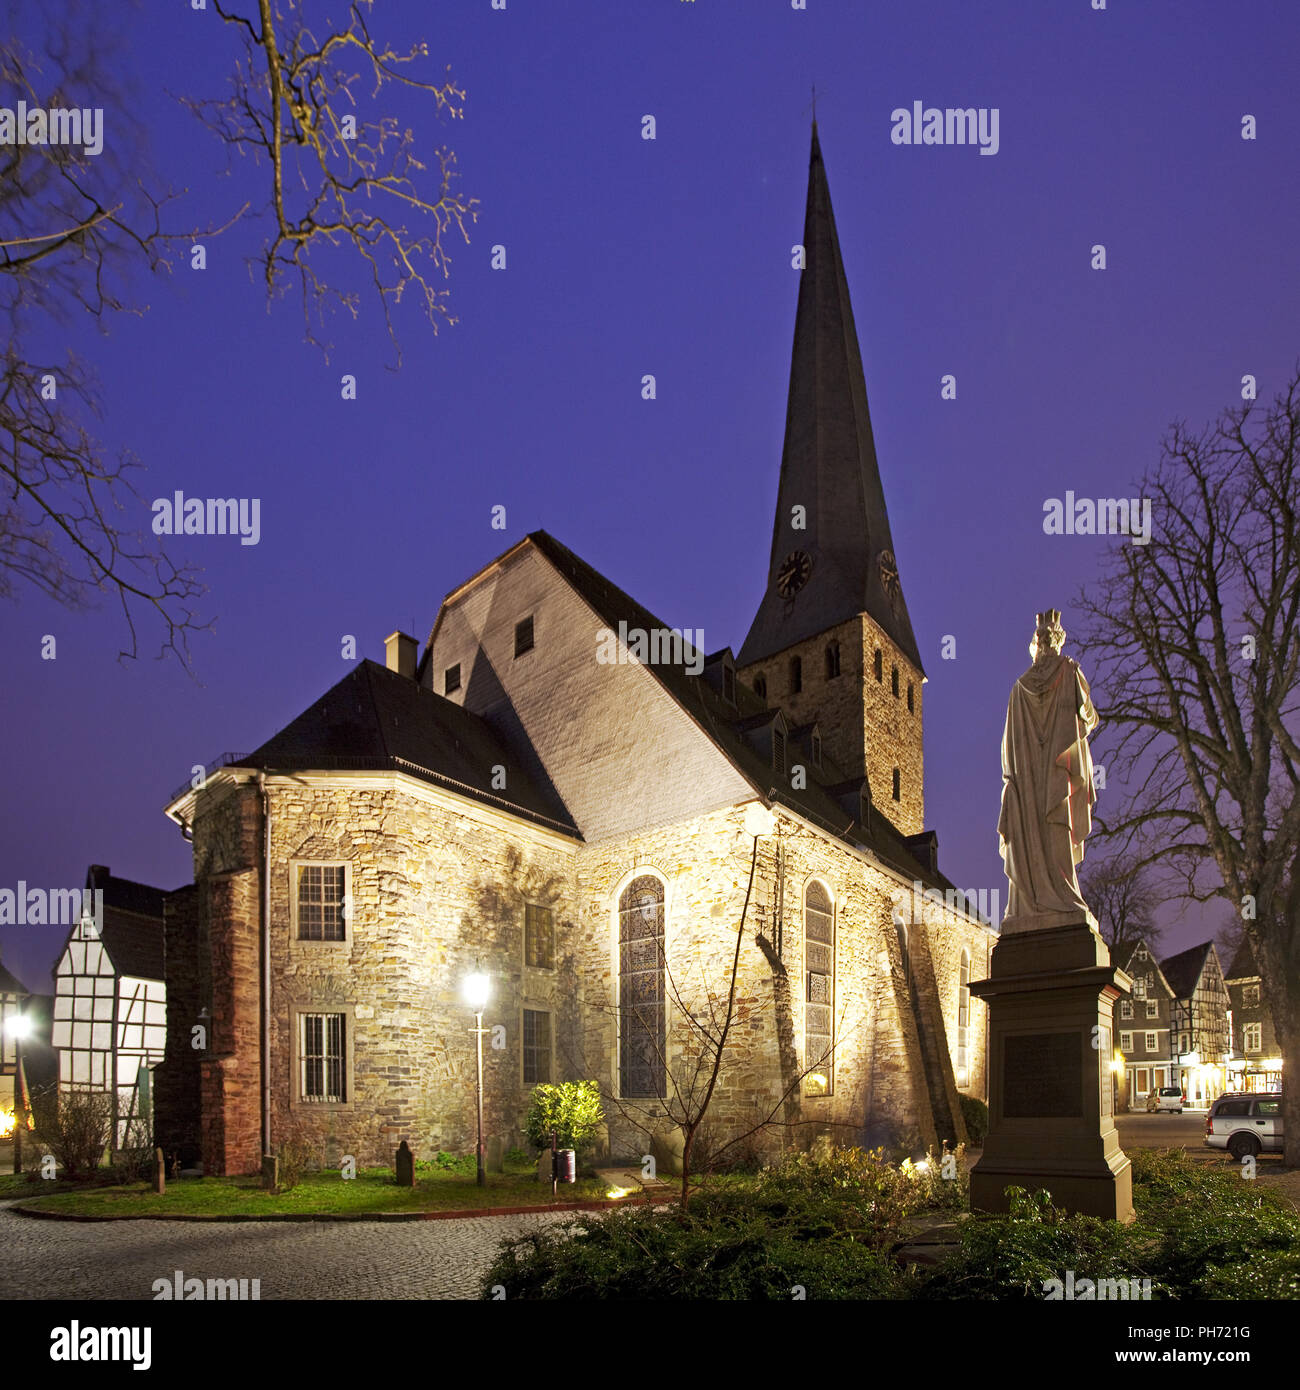 Old Town, St George's Church, Hattingen, Germany. - Stock Image